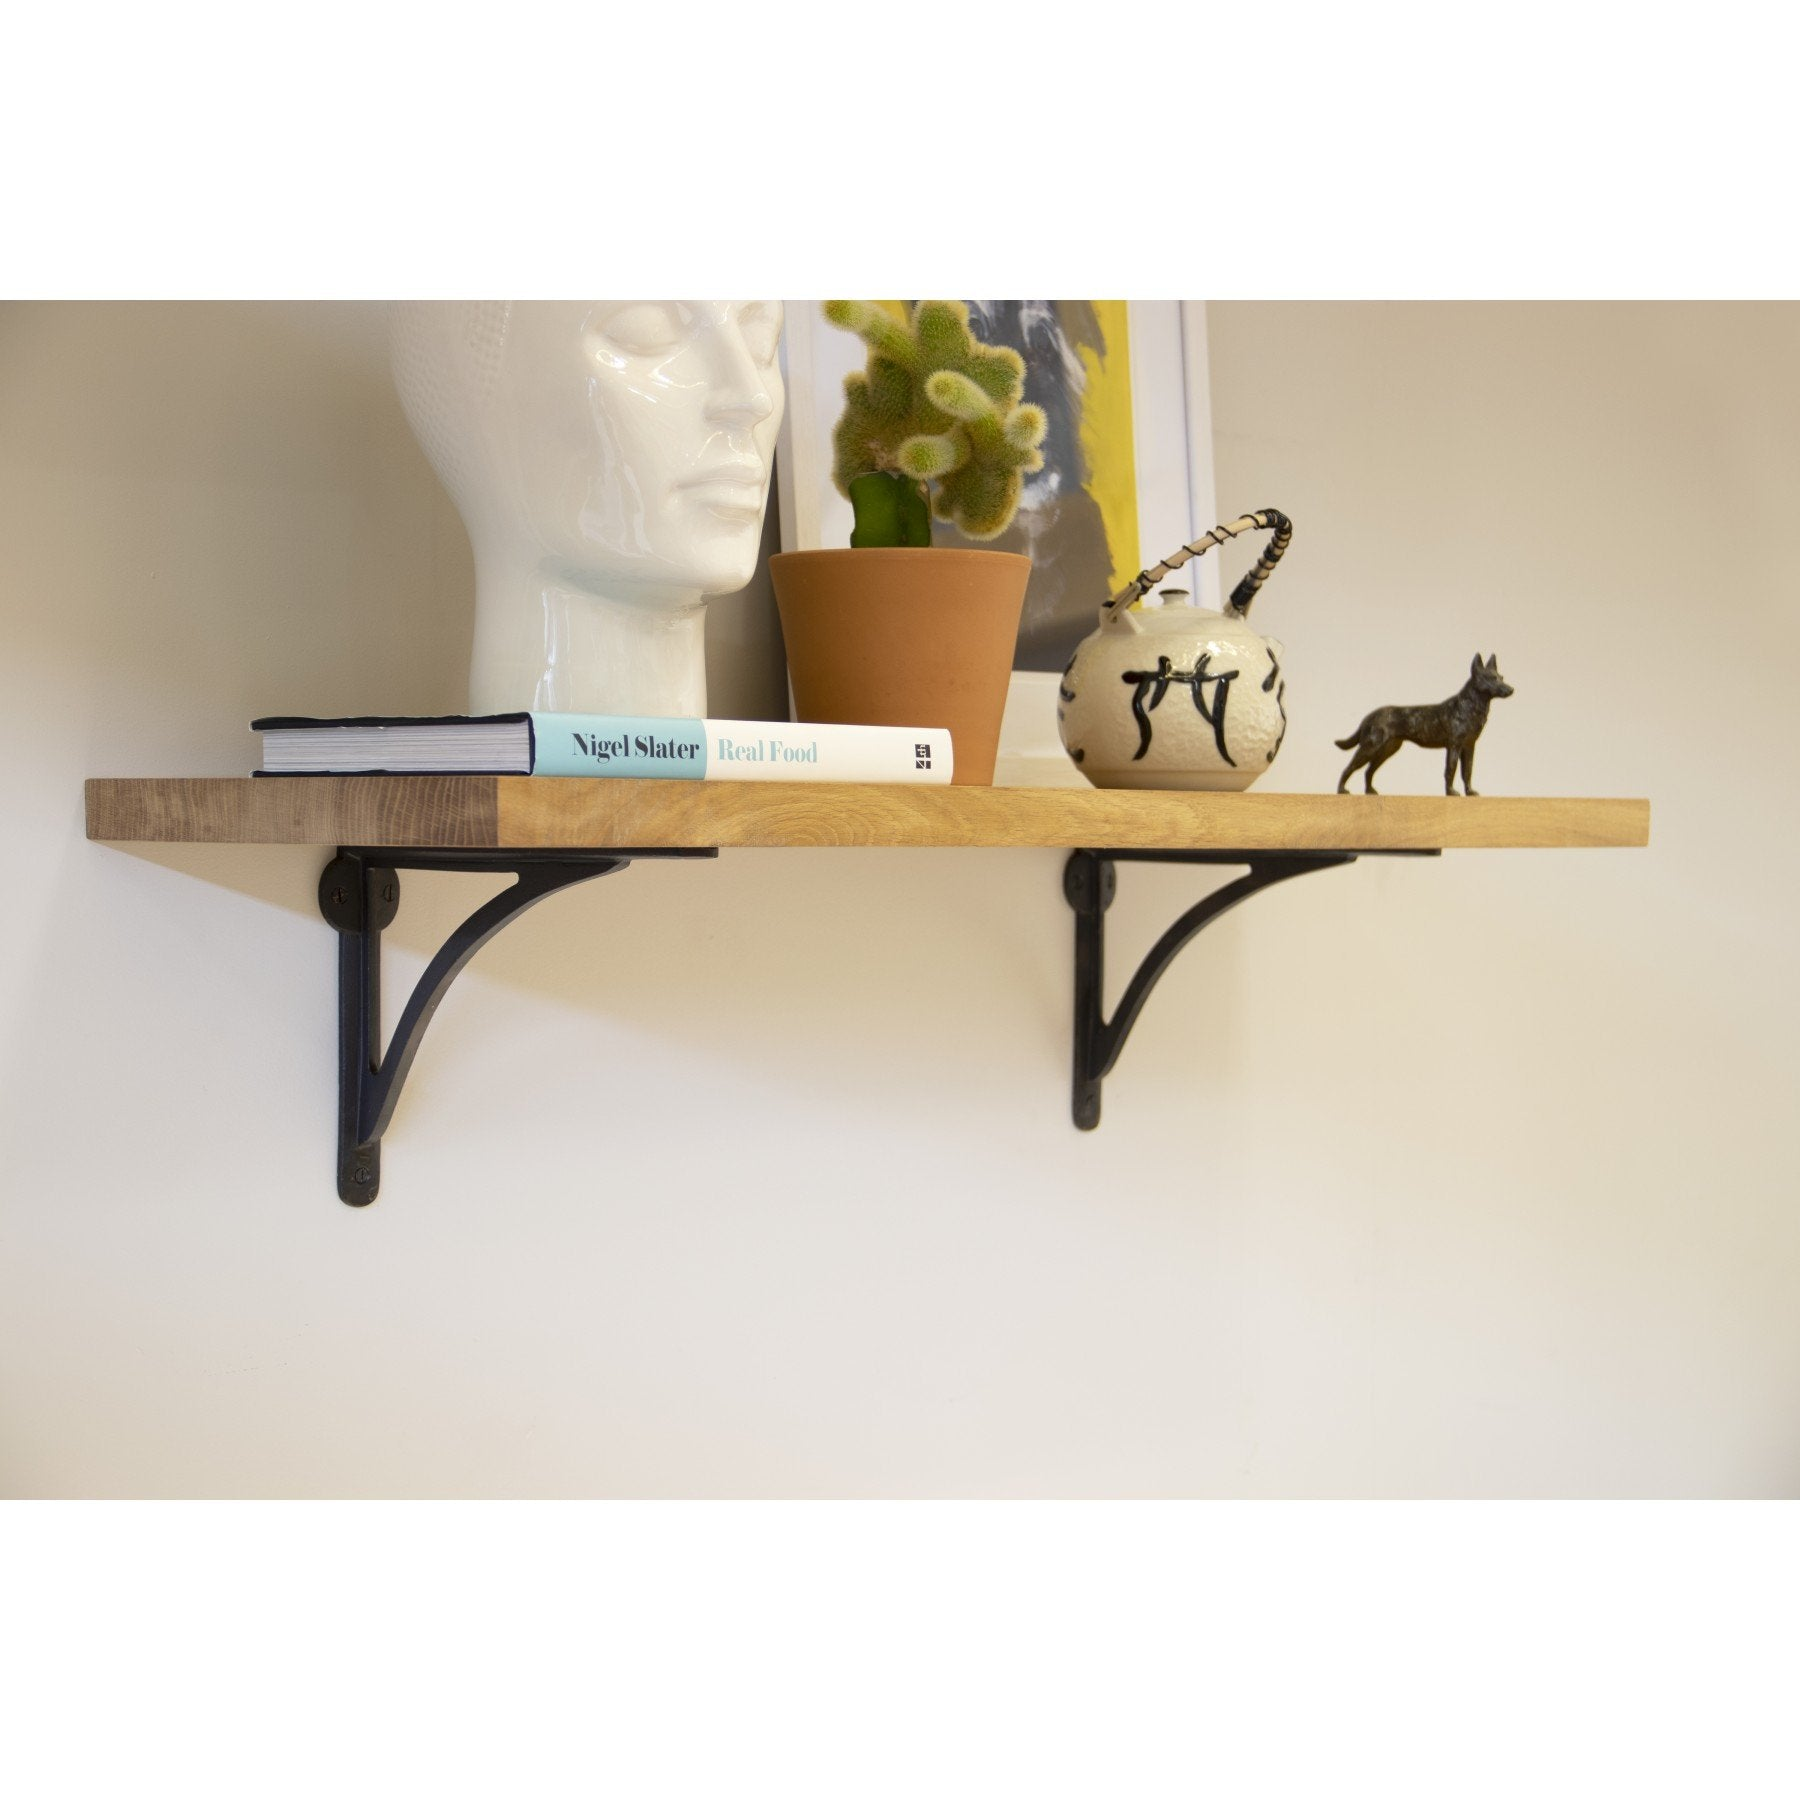 "Beeswax 10"" x 7"" Curved Shelf Bracket - No.42 Interiors"